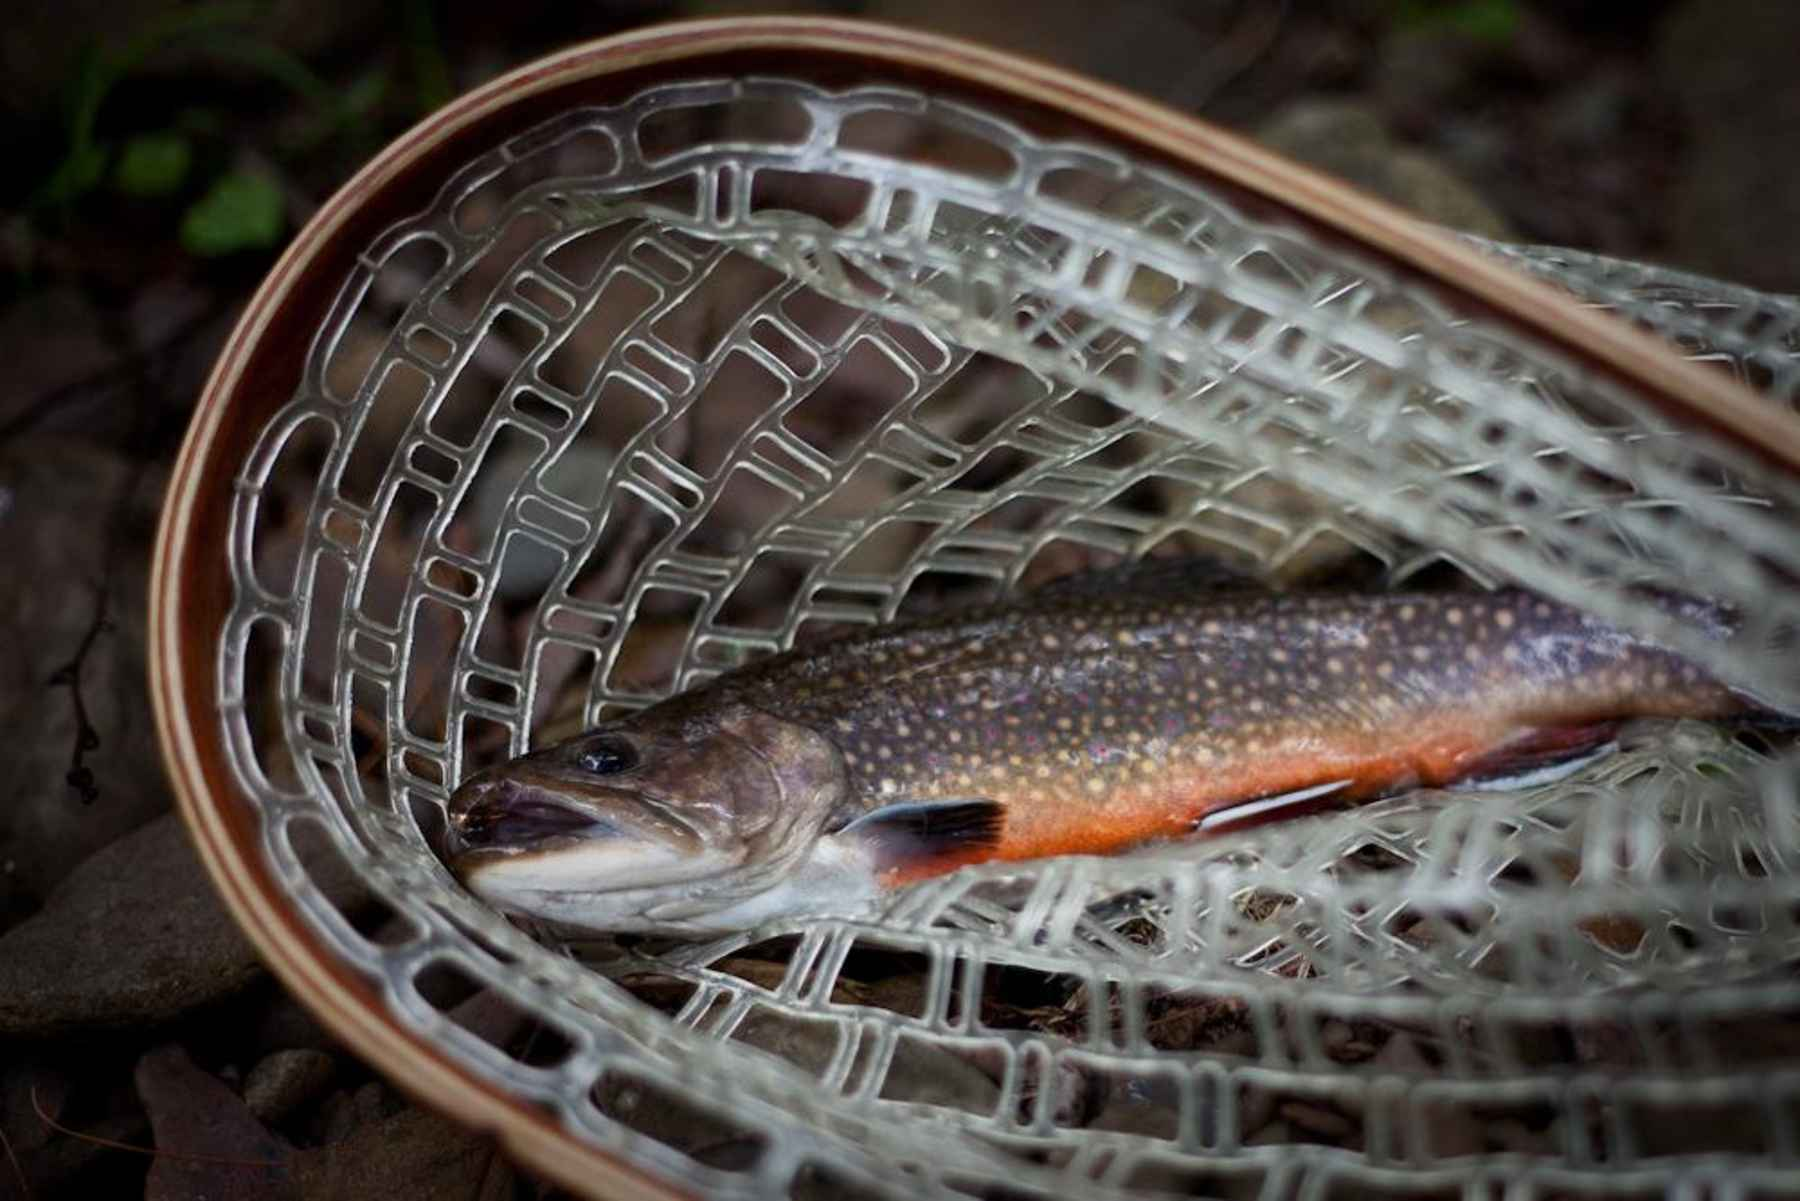 Trout and water temperature: How hot is too hot? | Hatch Magazine